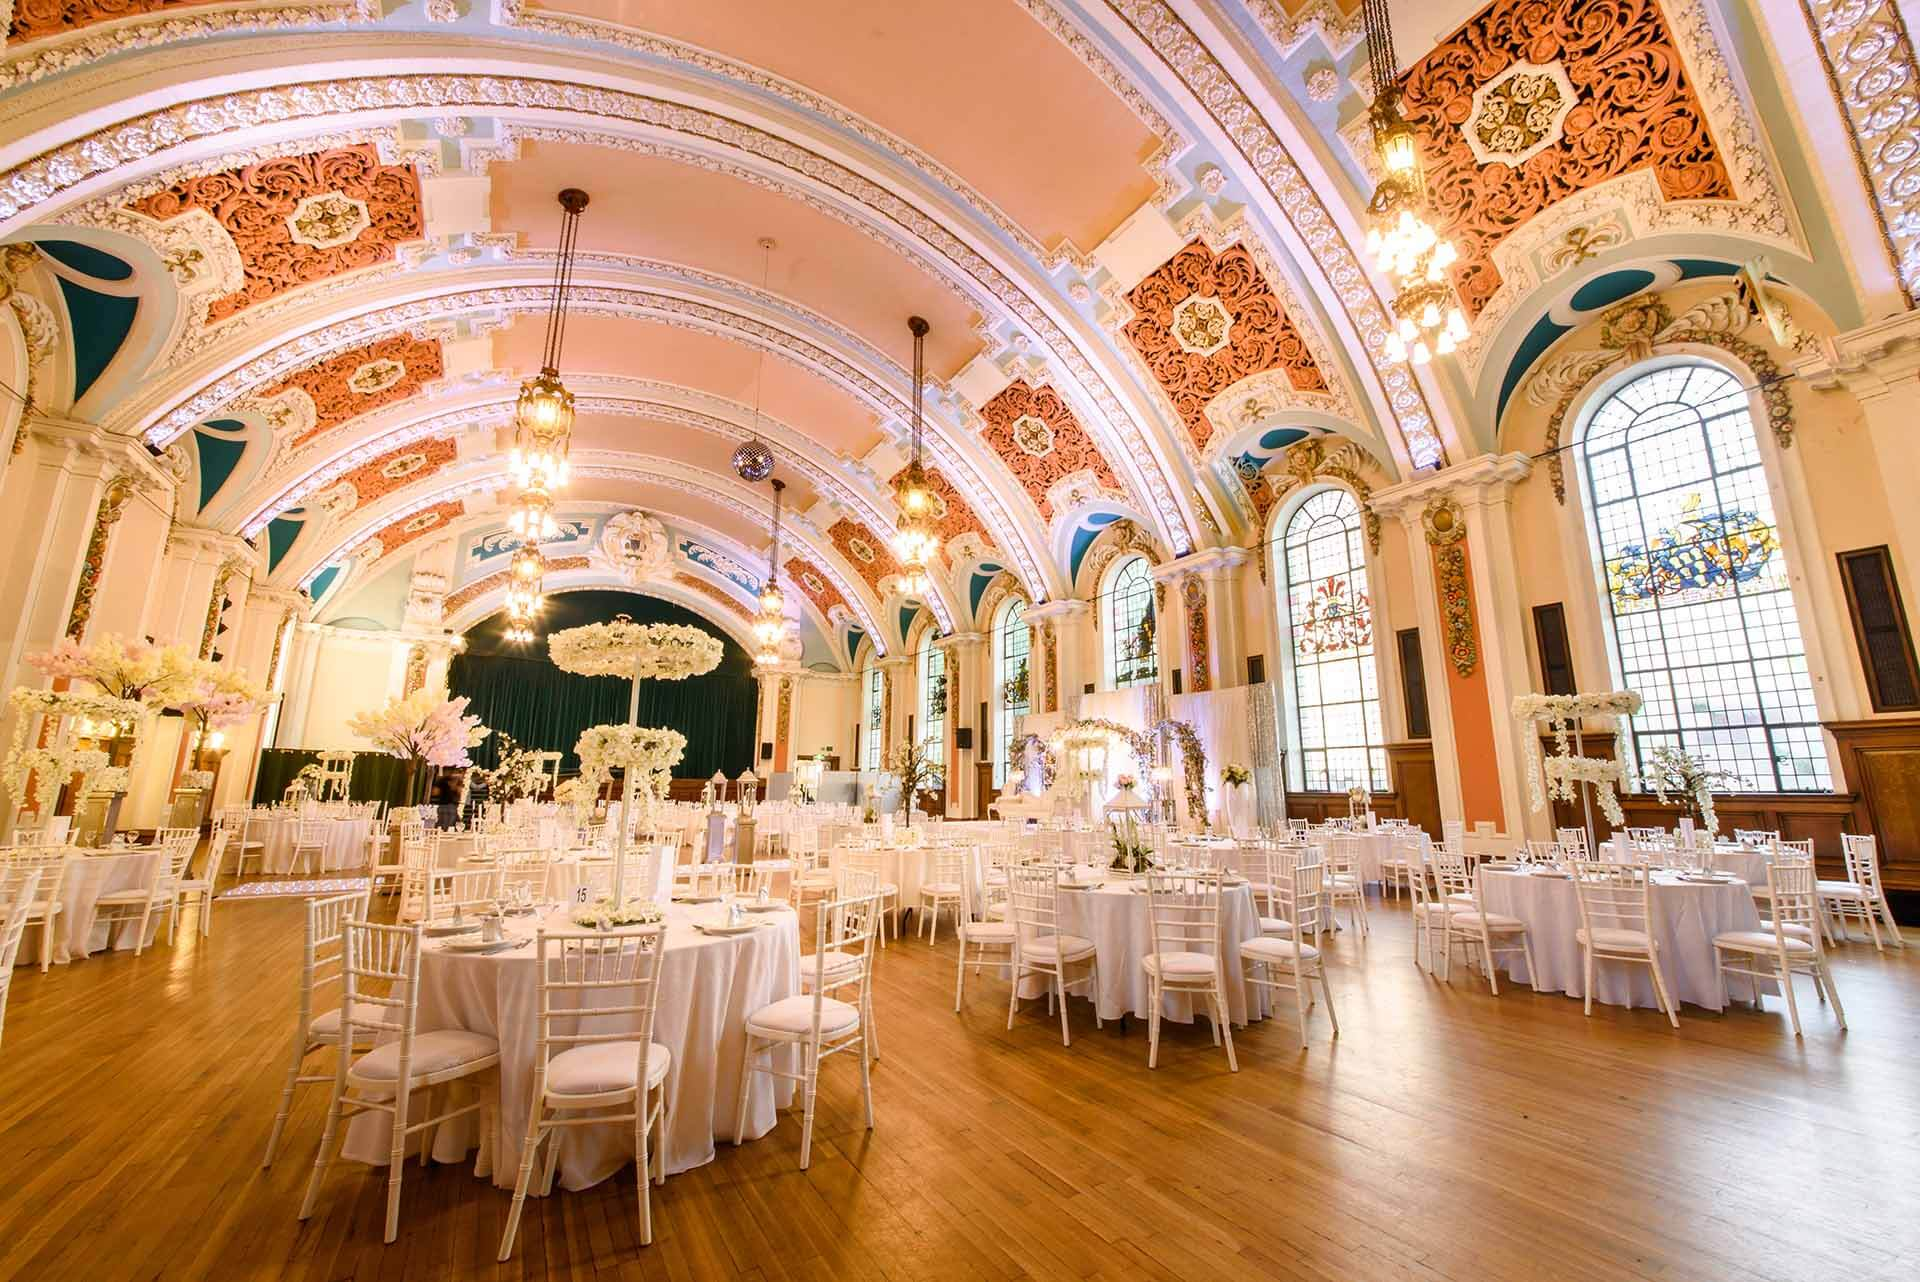 Stockport Town Hall Ballroom